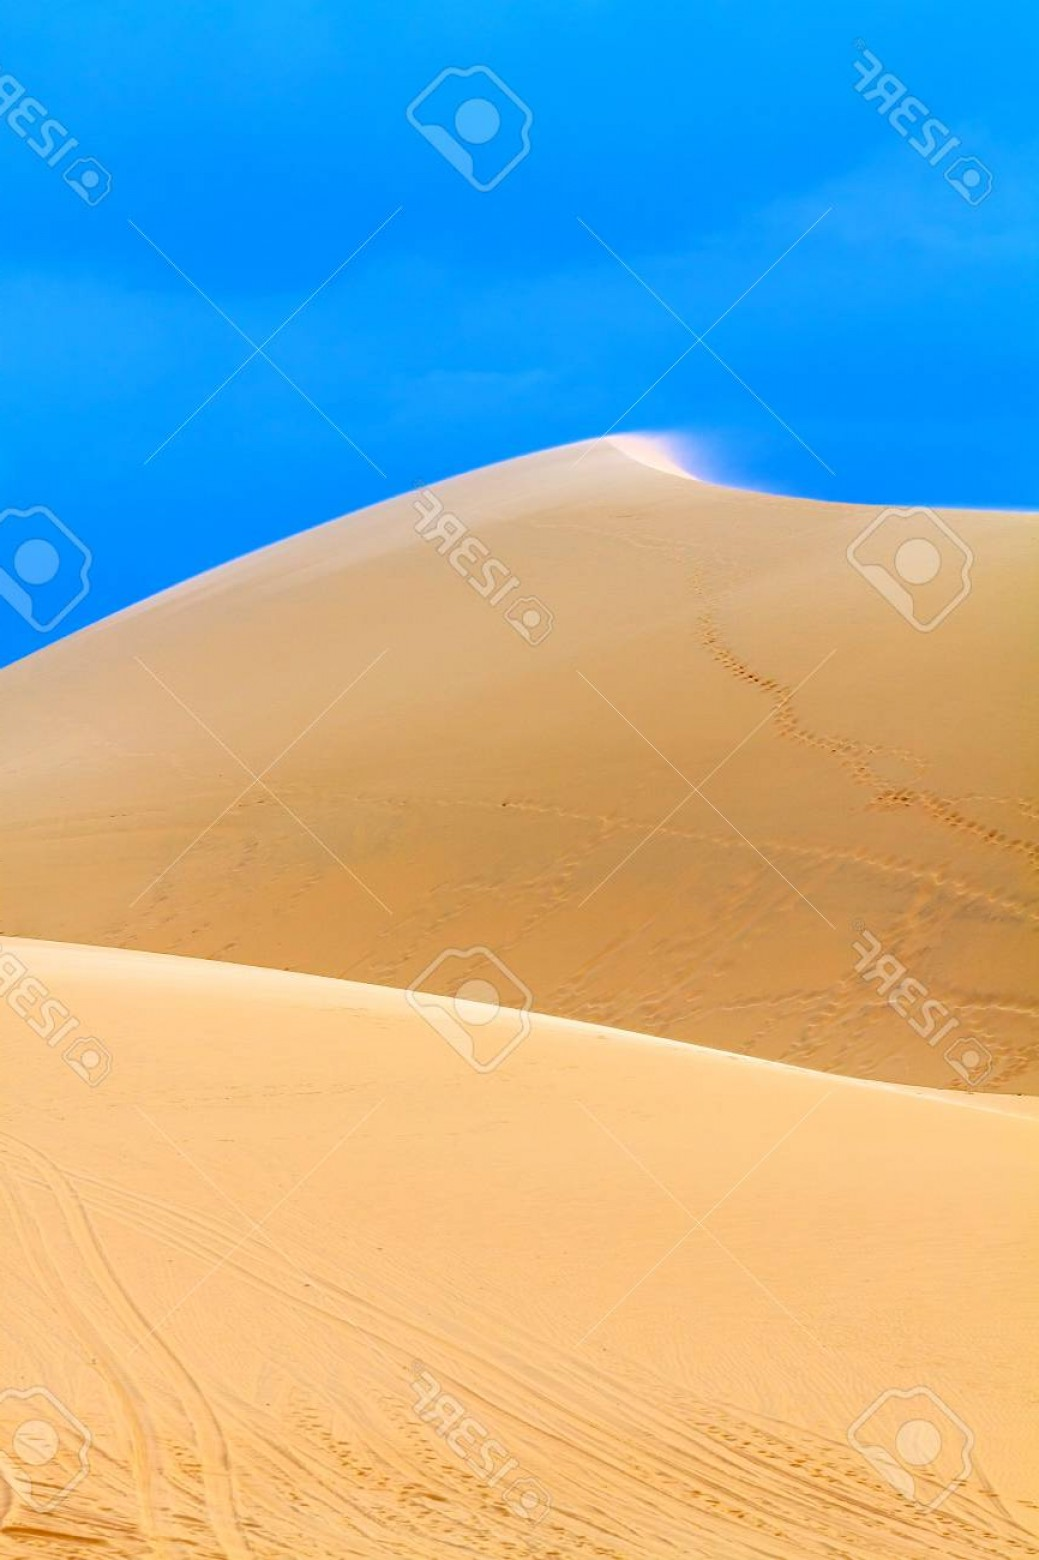 Sand Dune Silhouettes Vectors: Photothe Silhouette Of The Sand Dunes Against The Blue Sky